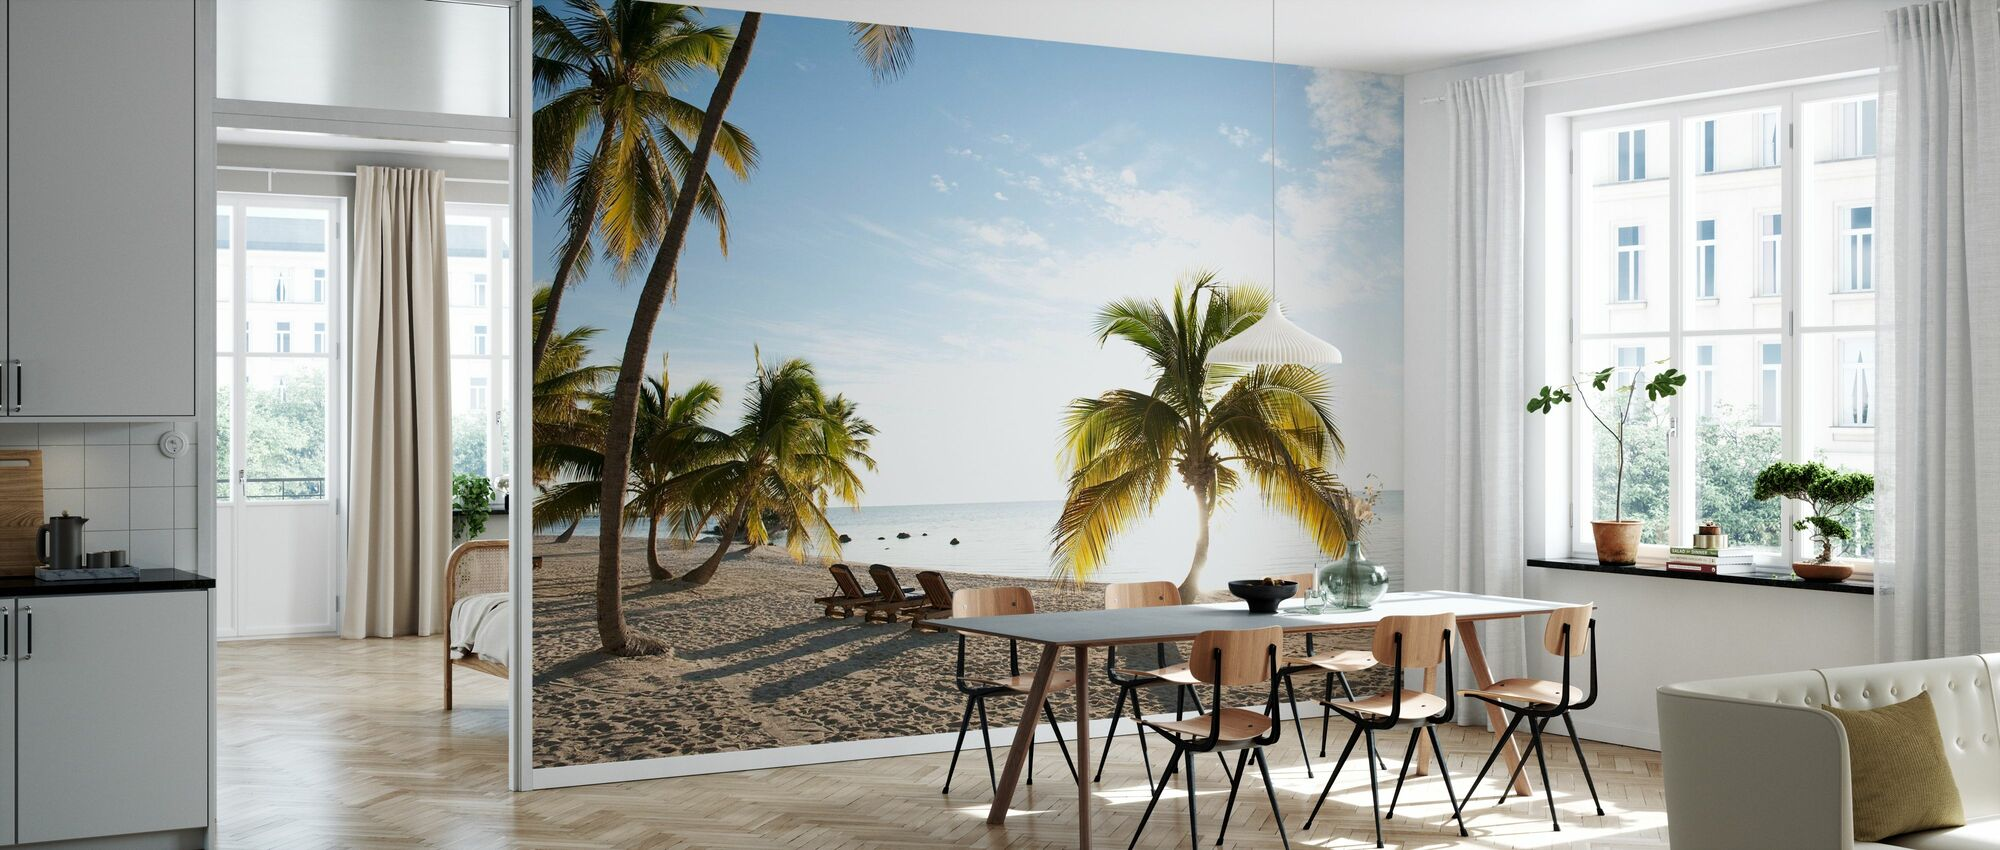 Beach in Islamorada in Florida Keys, USA - Wallpaper - Kitchen